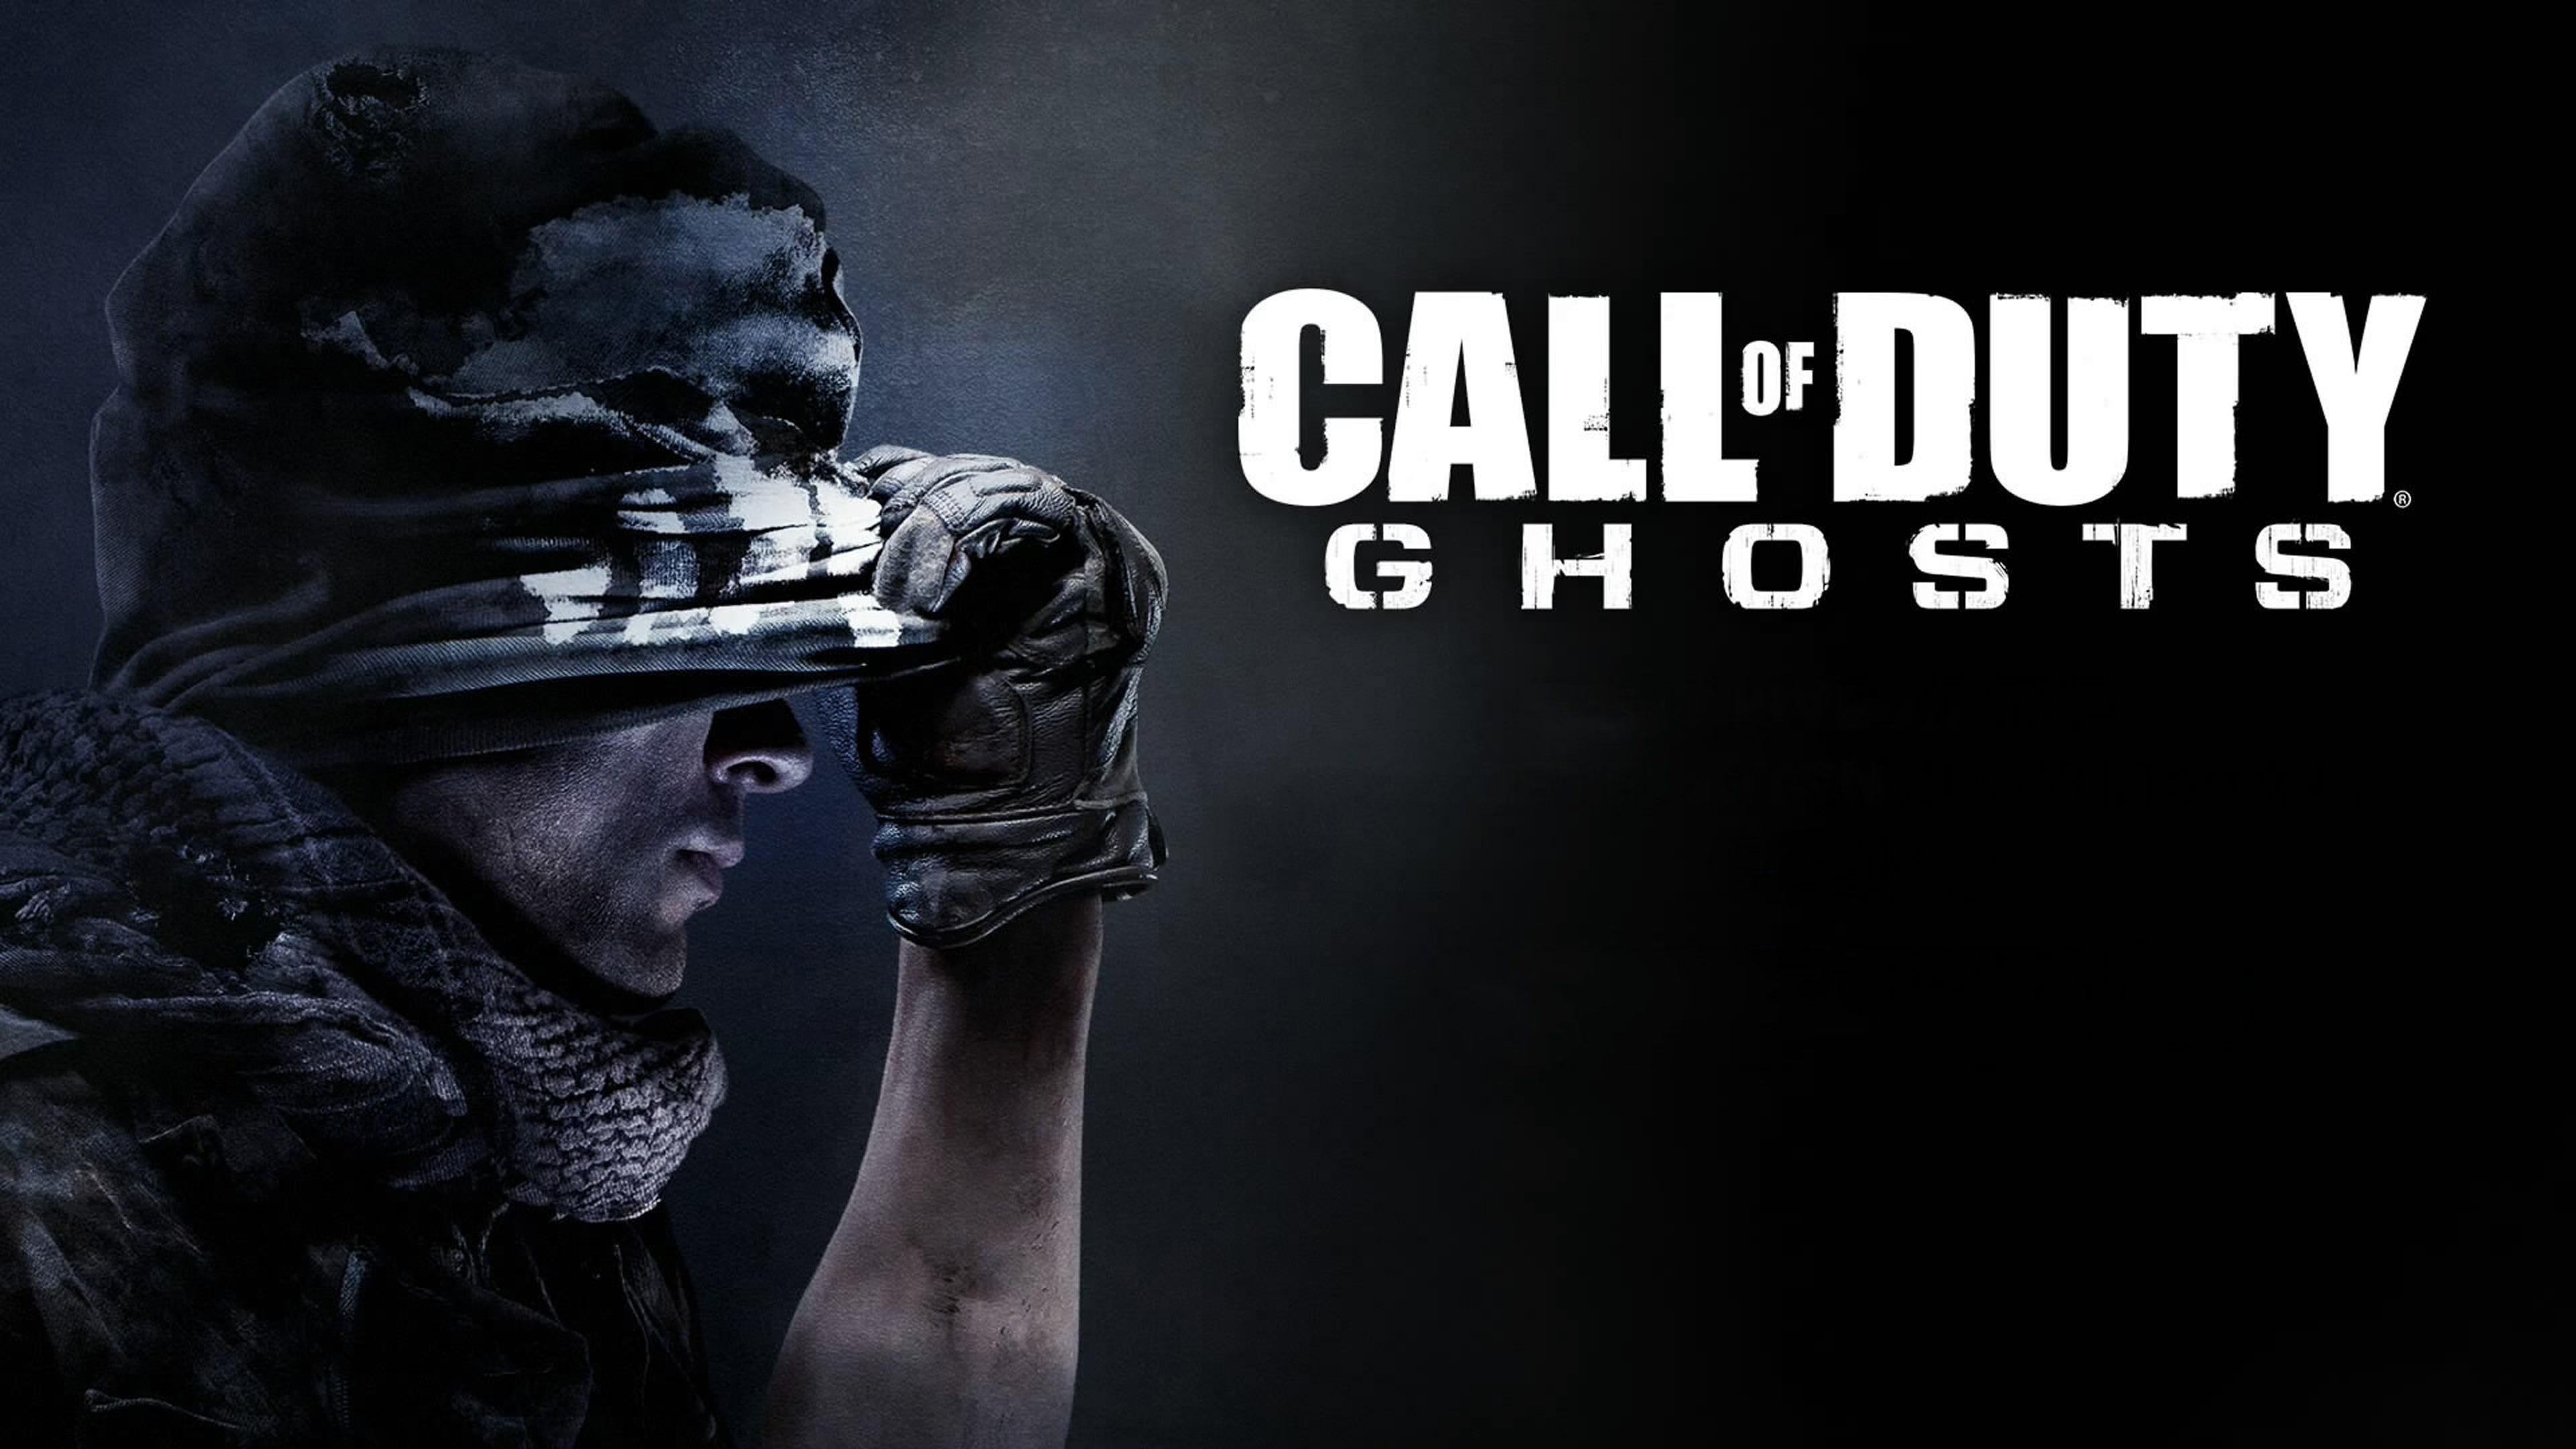 Call Of Duty Ghost 4k Wallpaper Game Call Of Duty Xbox Call Of